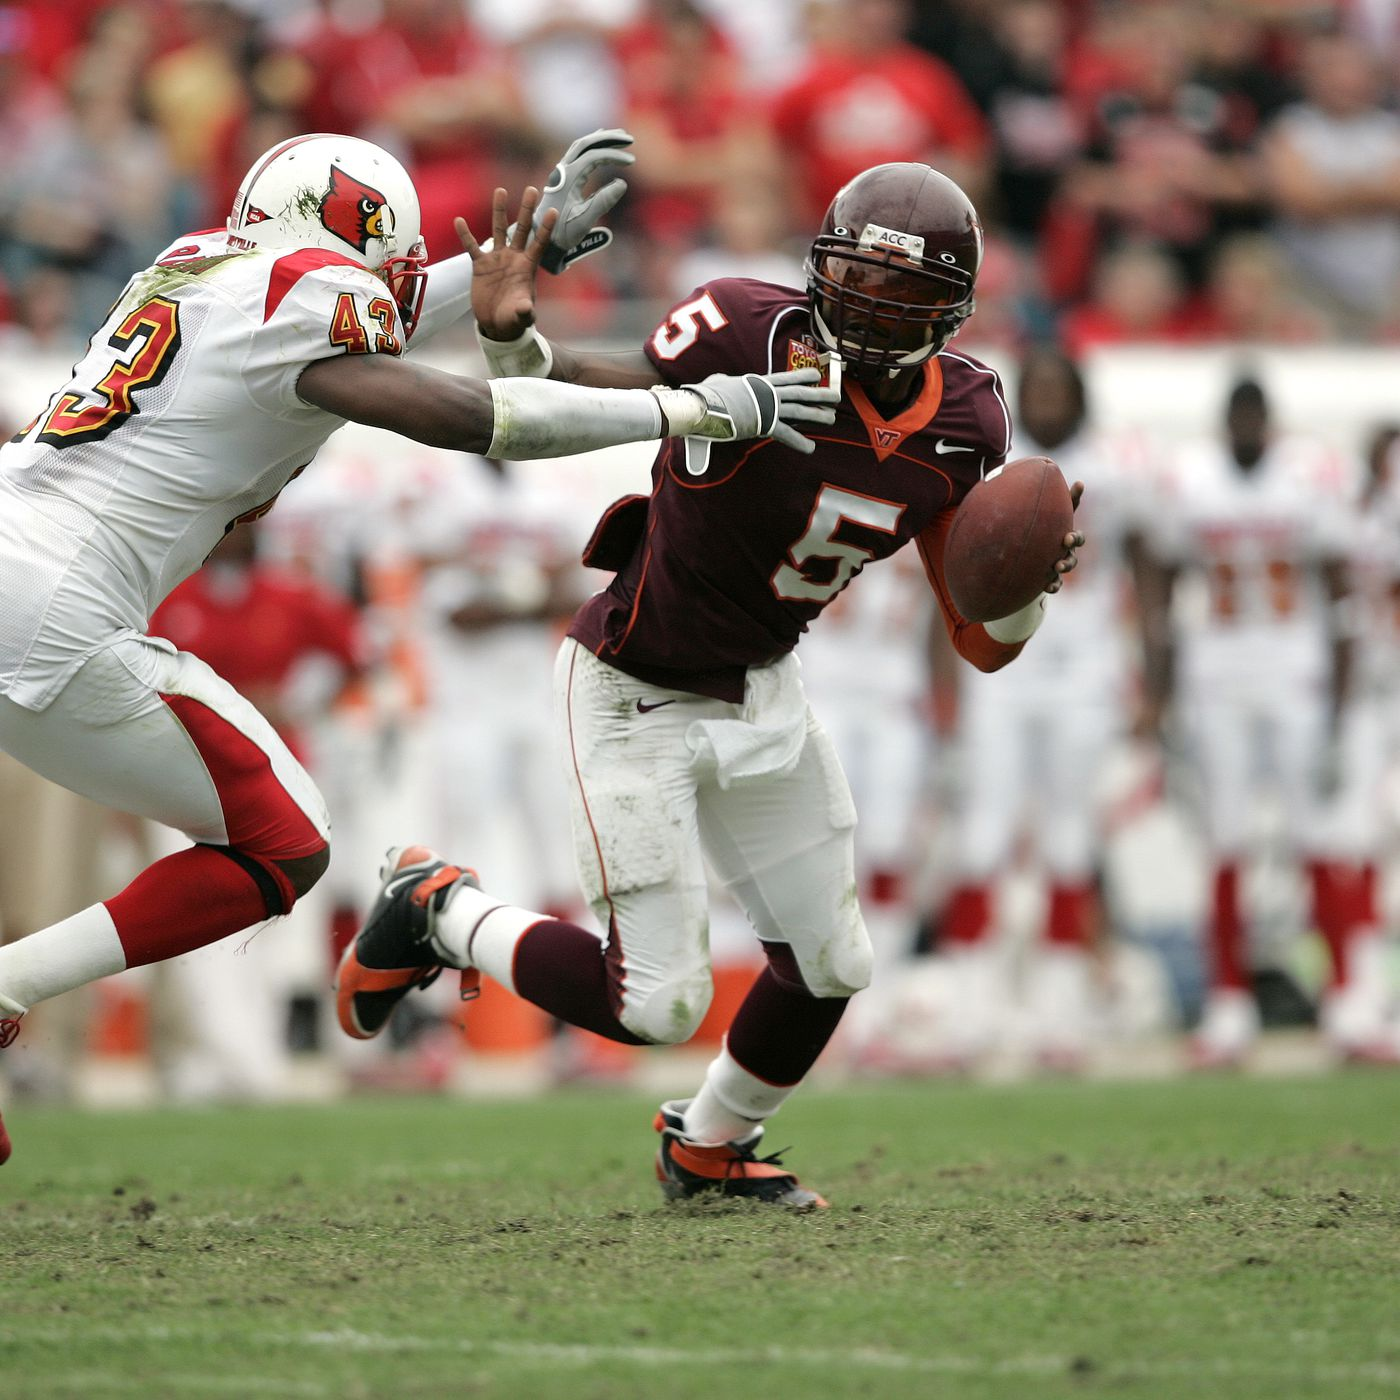 Virginia Tech Football A Chat With Card Chronicle Previewing The Hokies And Louisville Gobbler Country